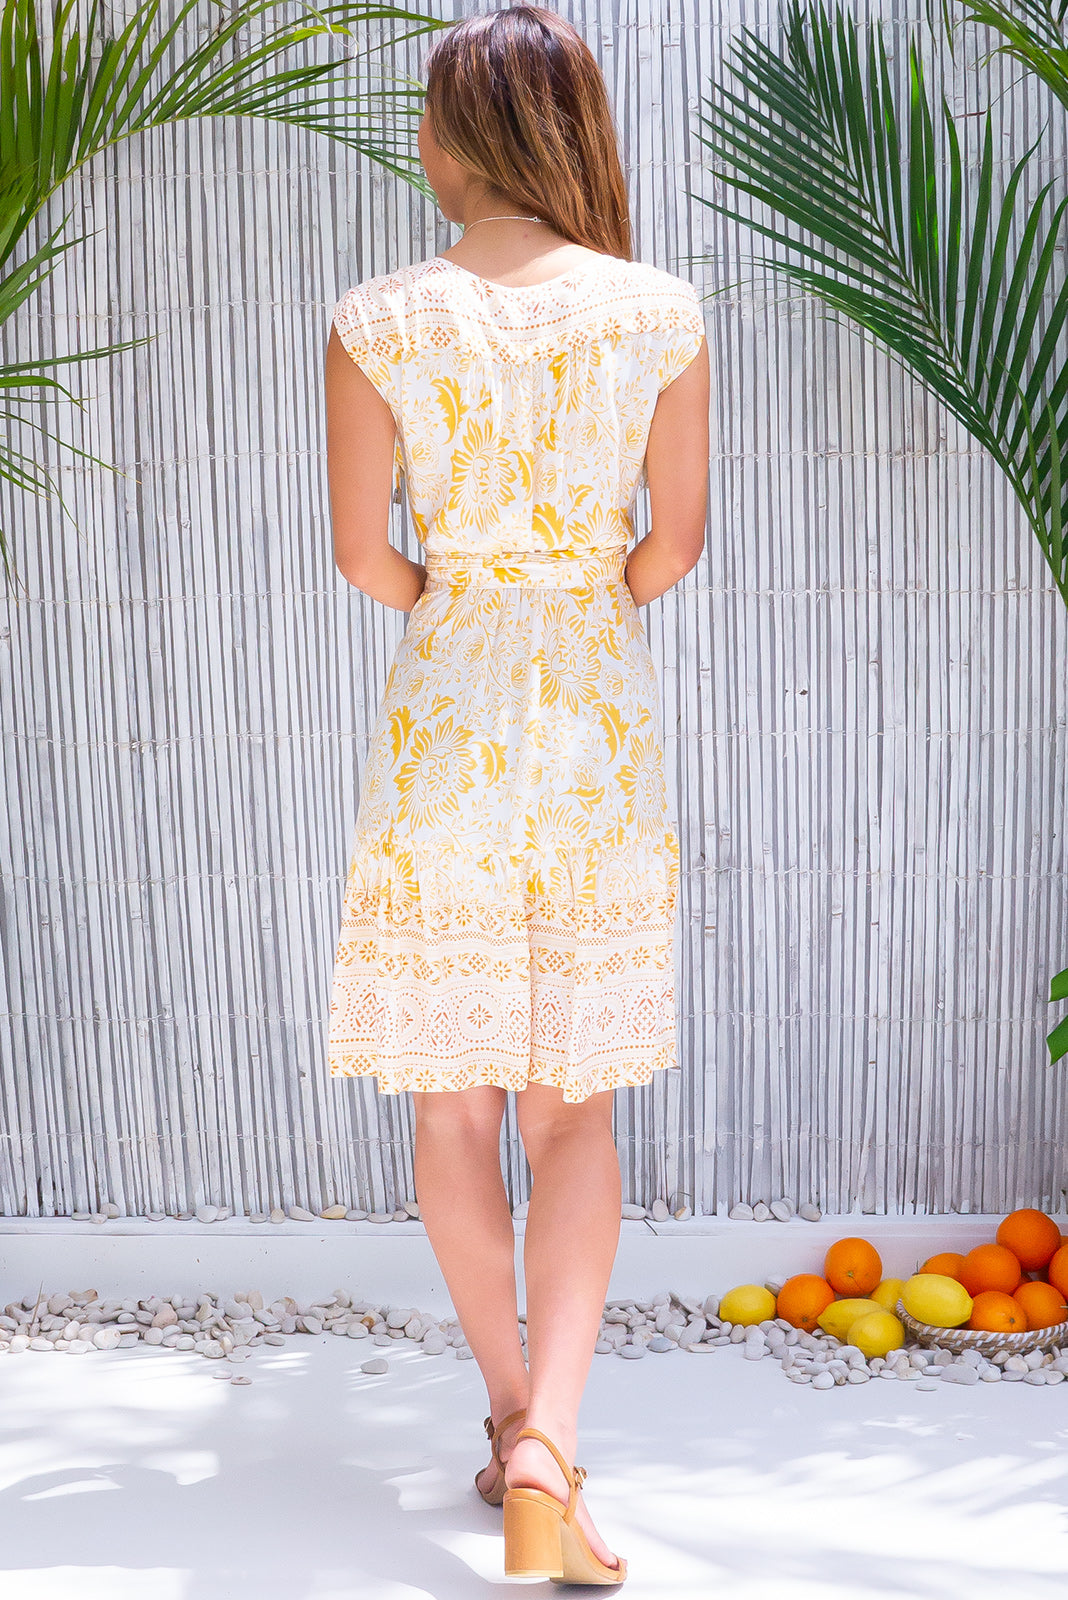 The Sea Breeze Riviera Gold Wrap Dress has short sleeves with removable ties, fattering adjustable wrap design, elasticated waist band at the back, border print, frill hem, crisp, white base with bohemian stencil print in yellow and amber in woven 100% rayon.